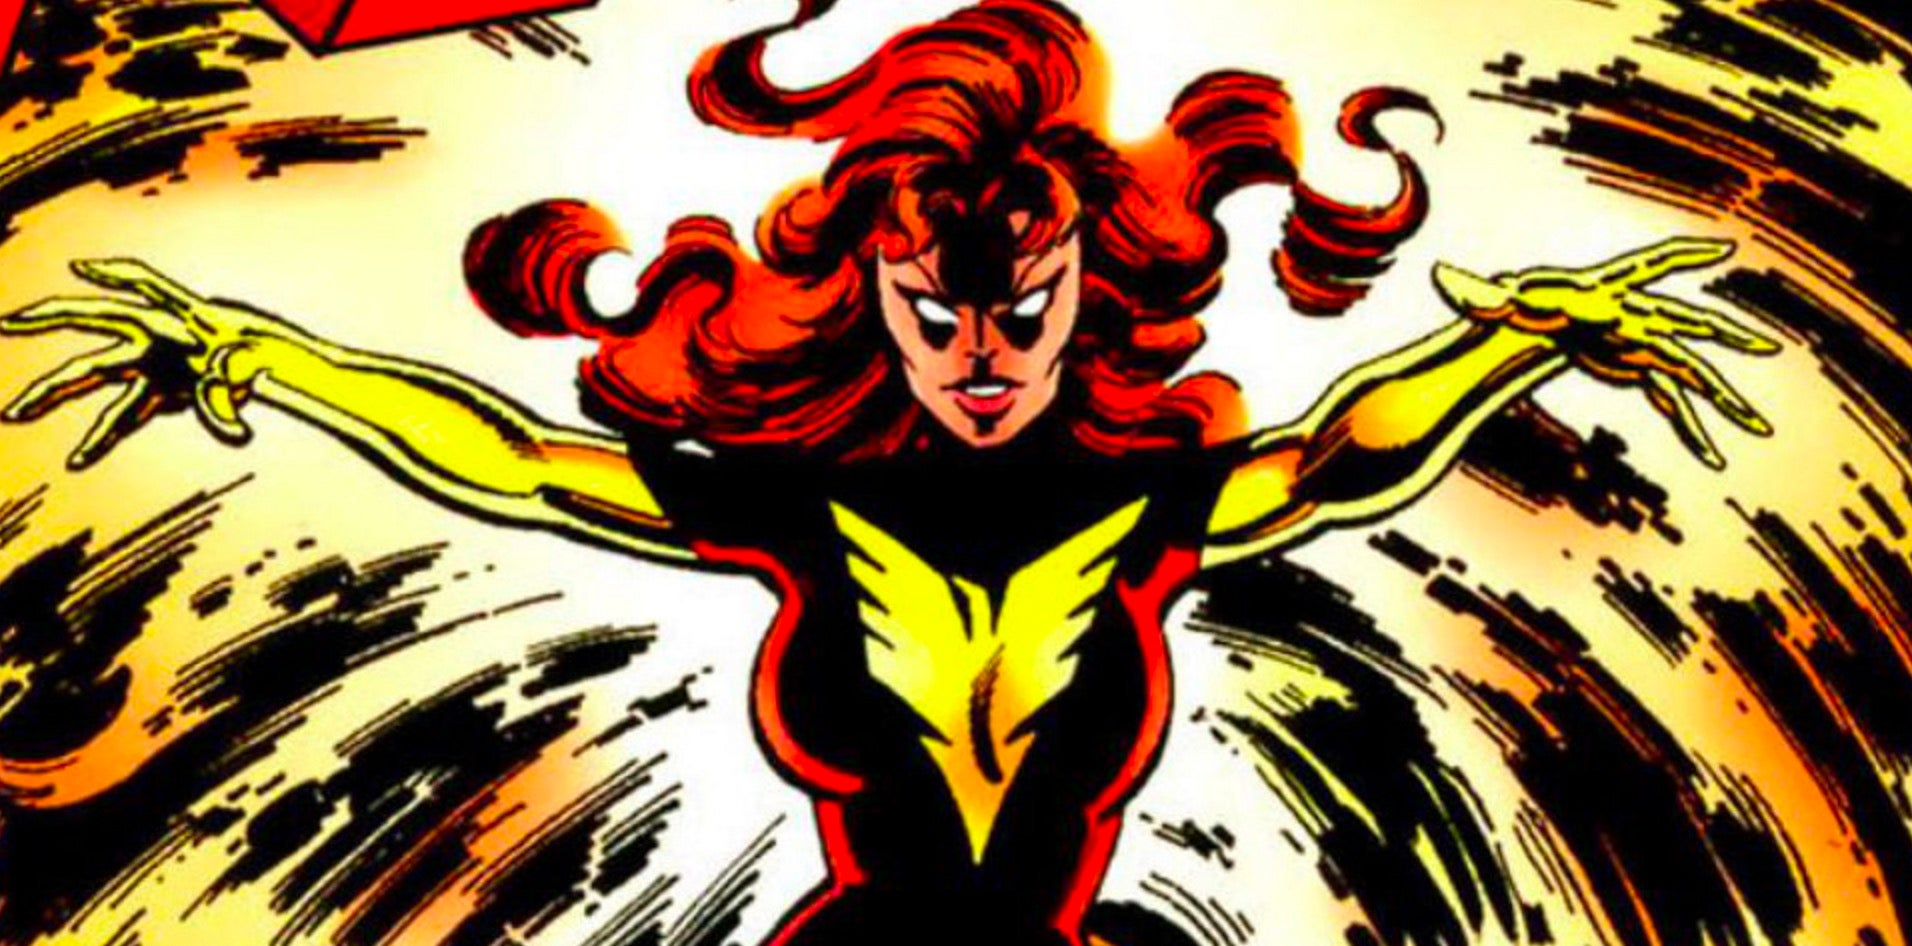 X-Men: Dark Phoenix Sets Its Main Cast And Creative Team With One Big New Addition